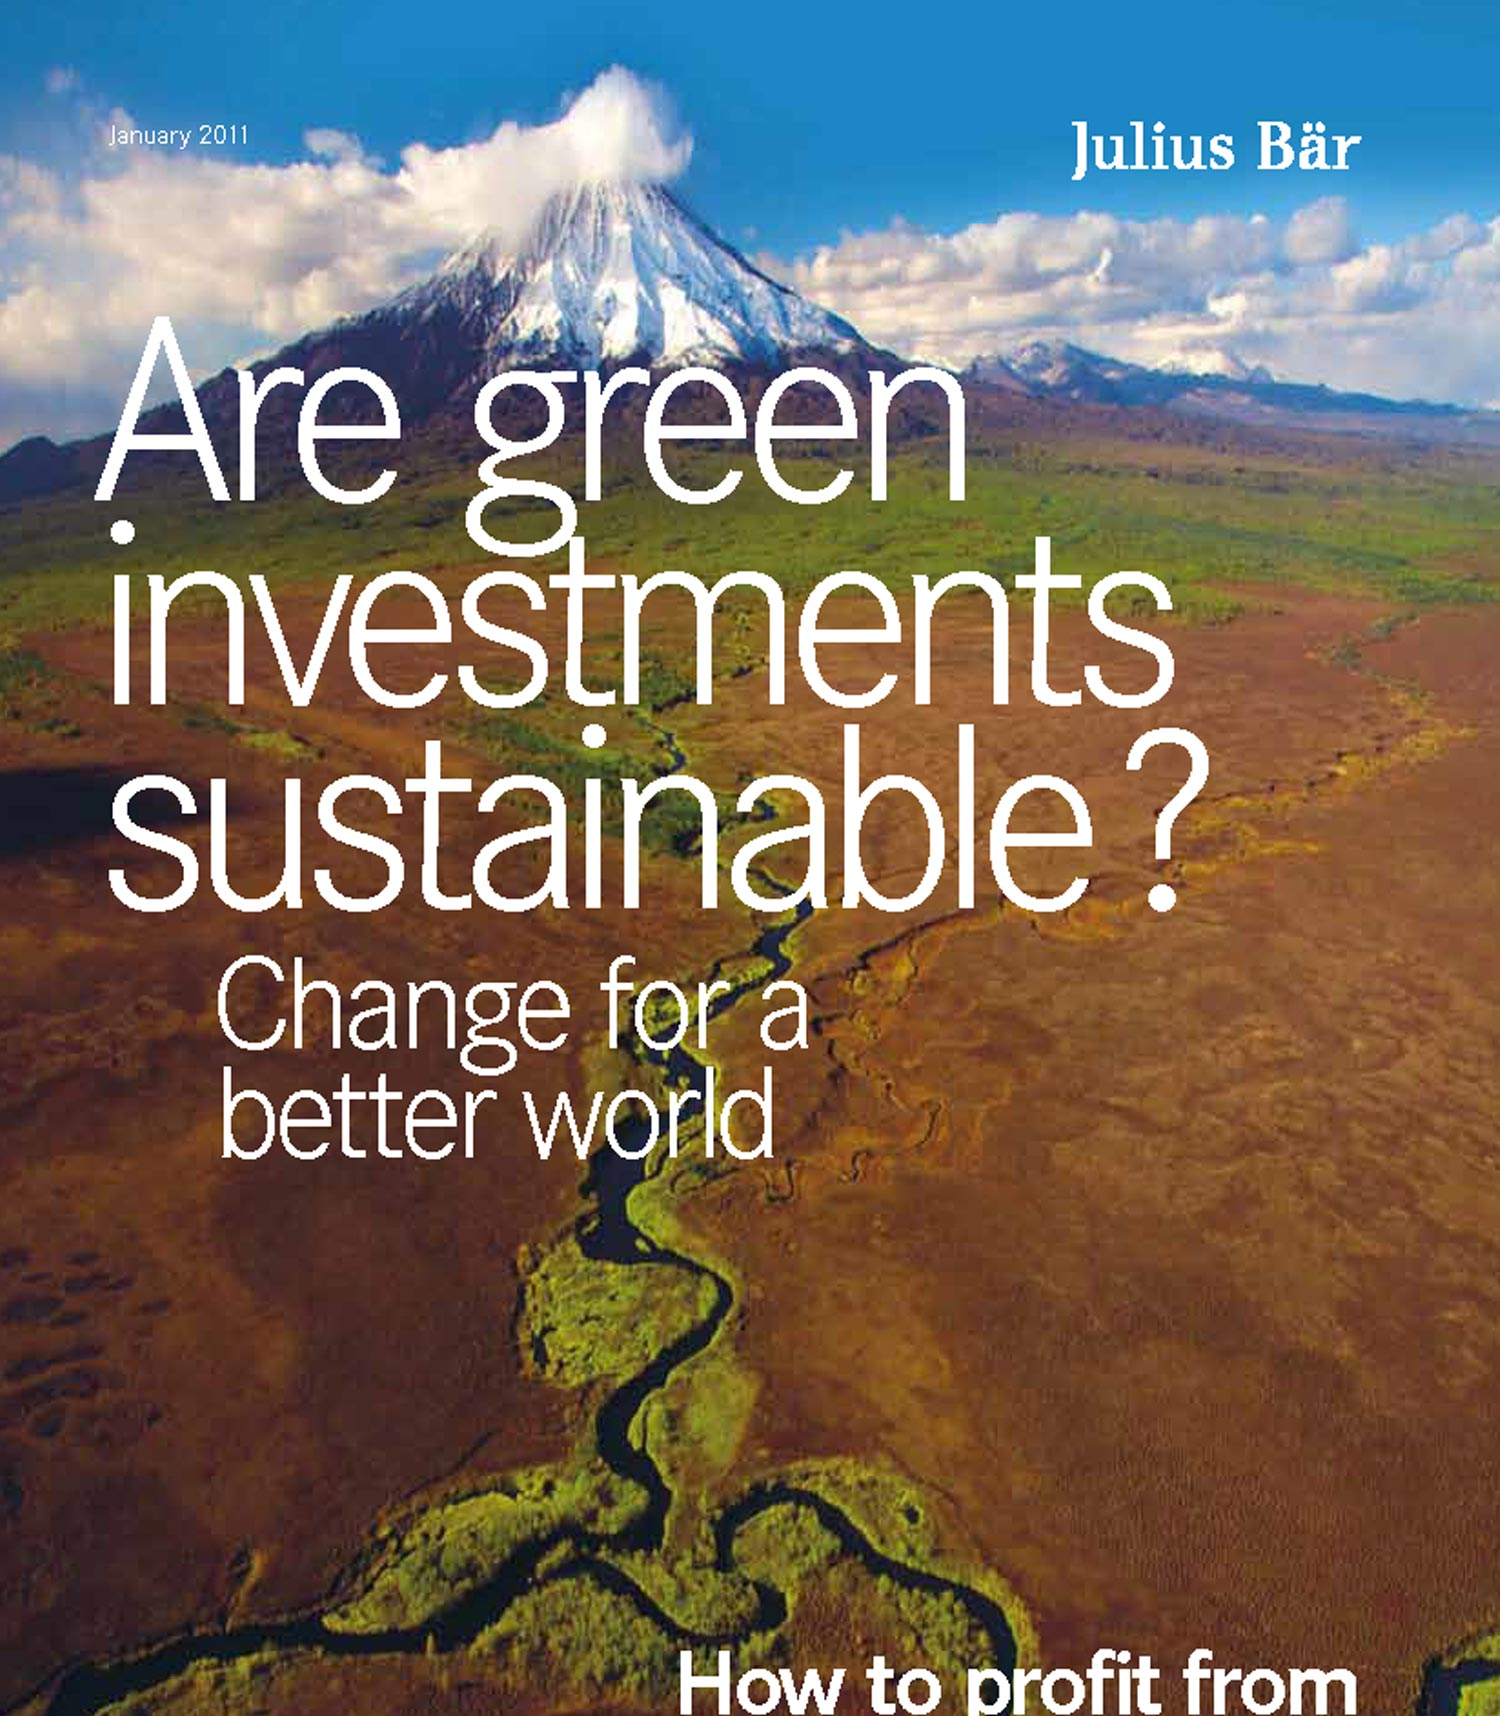 Bank Julius Bär & Co. Ltd. - Investment Magazine 2011